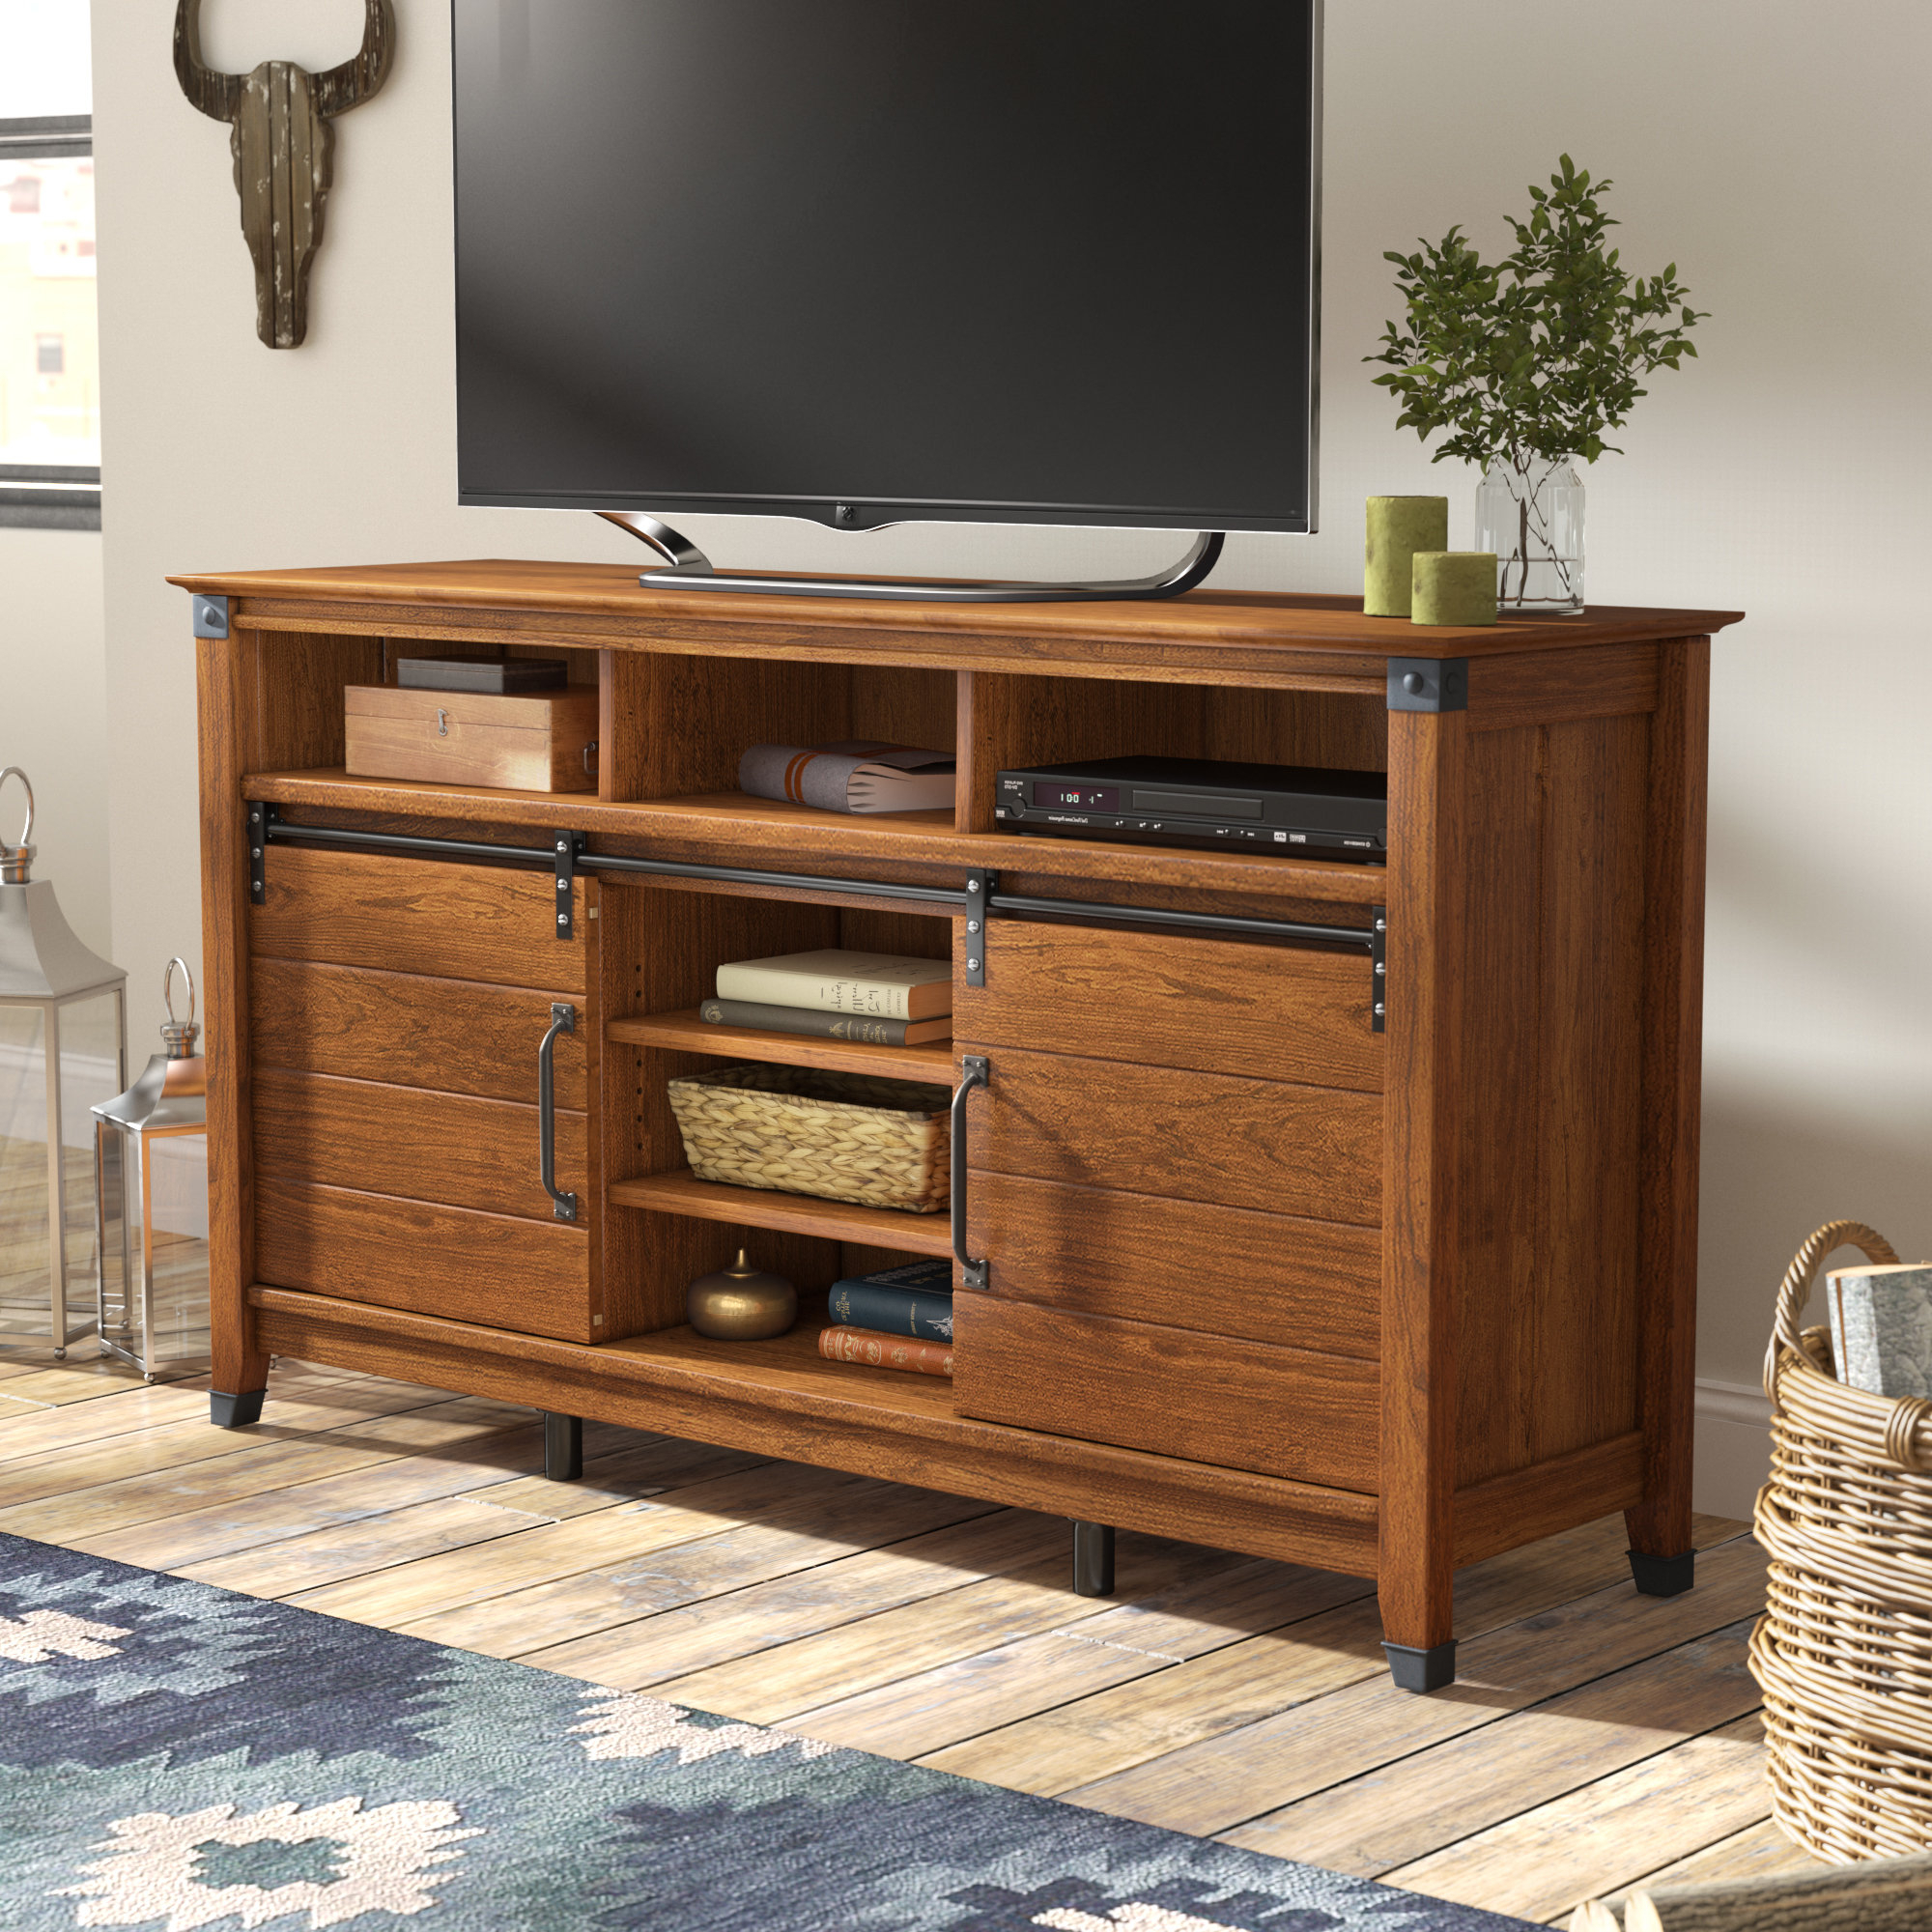 Tall (33 Inches And Larger) Tv Stands | Birch Lane For Edwin Black 64 Inch Tv Stands (View 10 of 20)